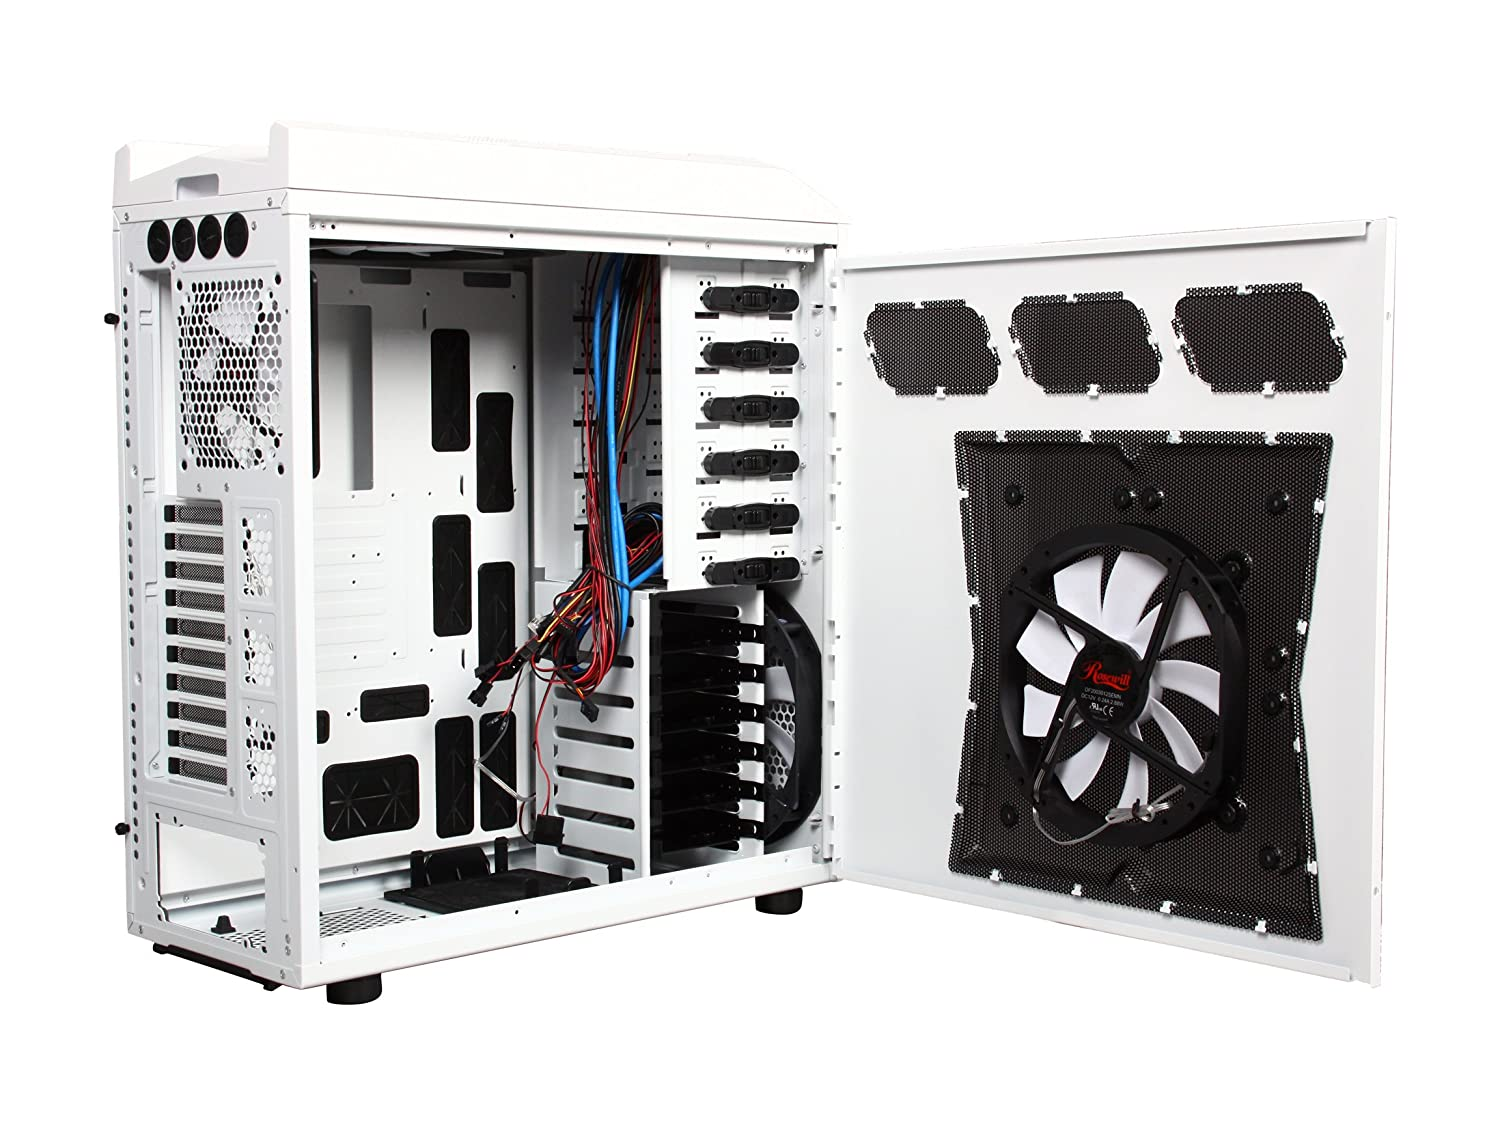 Rosewill Gaming Atx Full Tower Computer Case Cases Thor Gt Enclosures Panels Boards Electrical Boxes V2 W Black White Computers Accessories